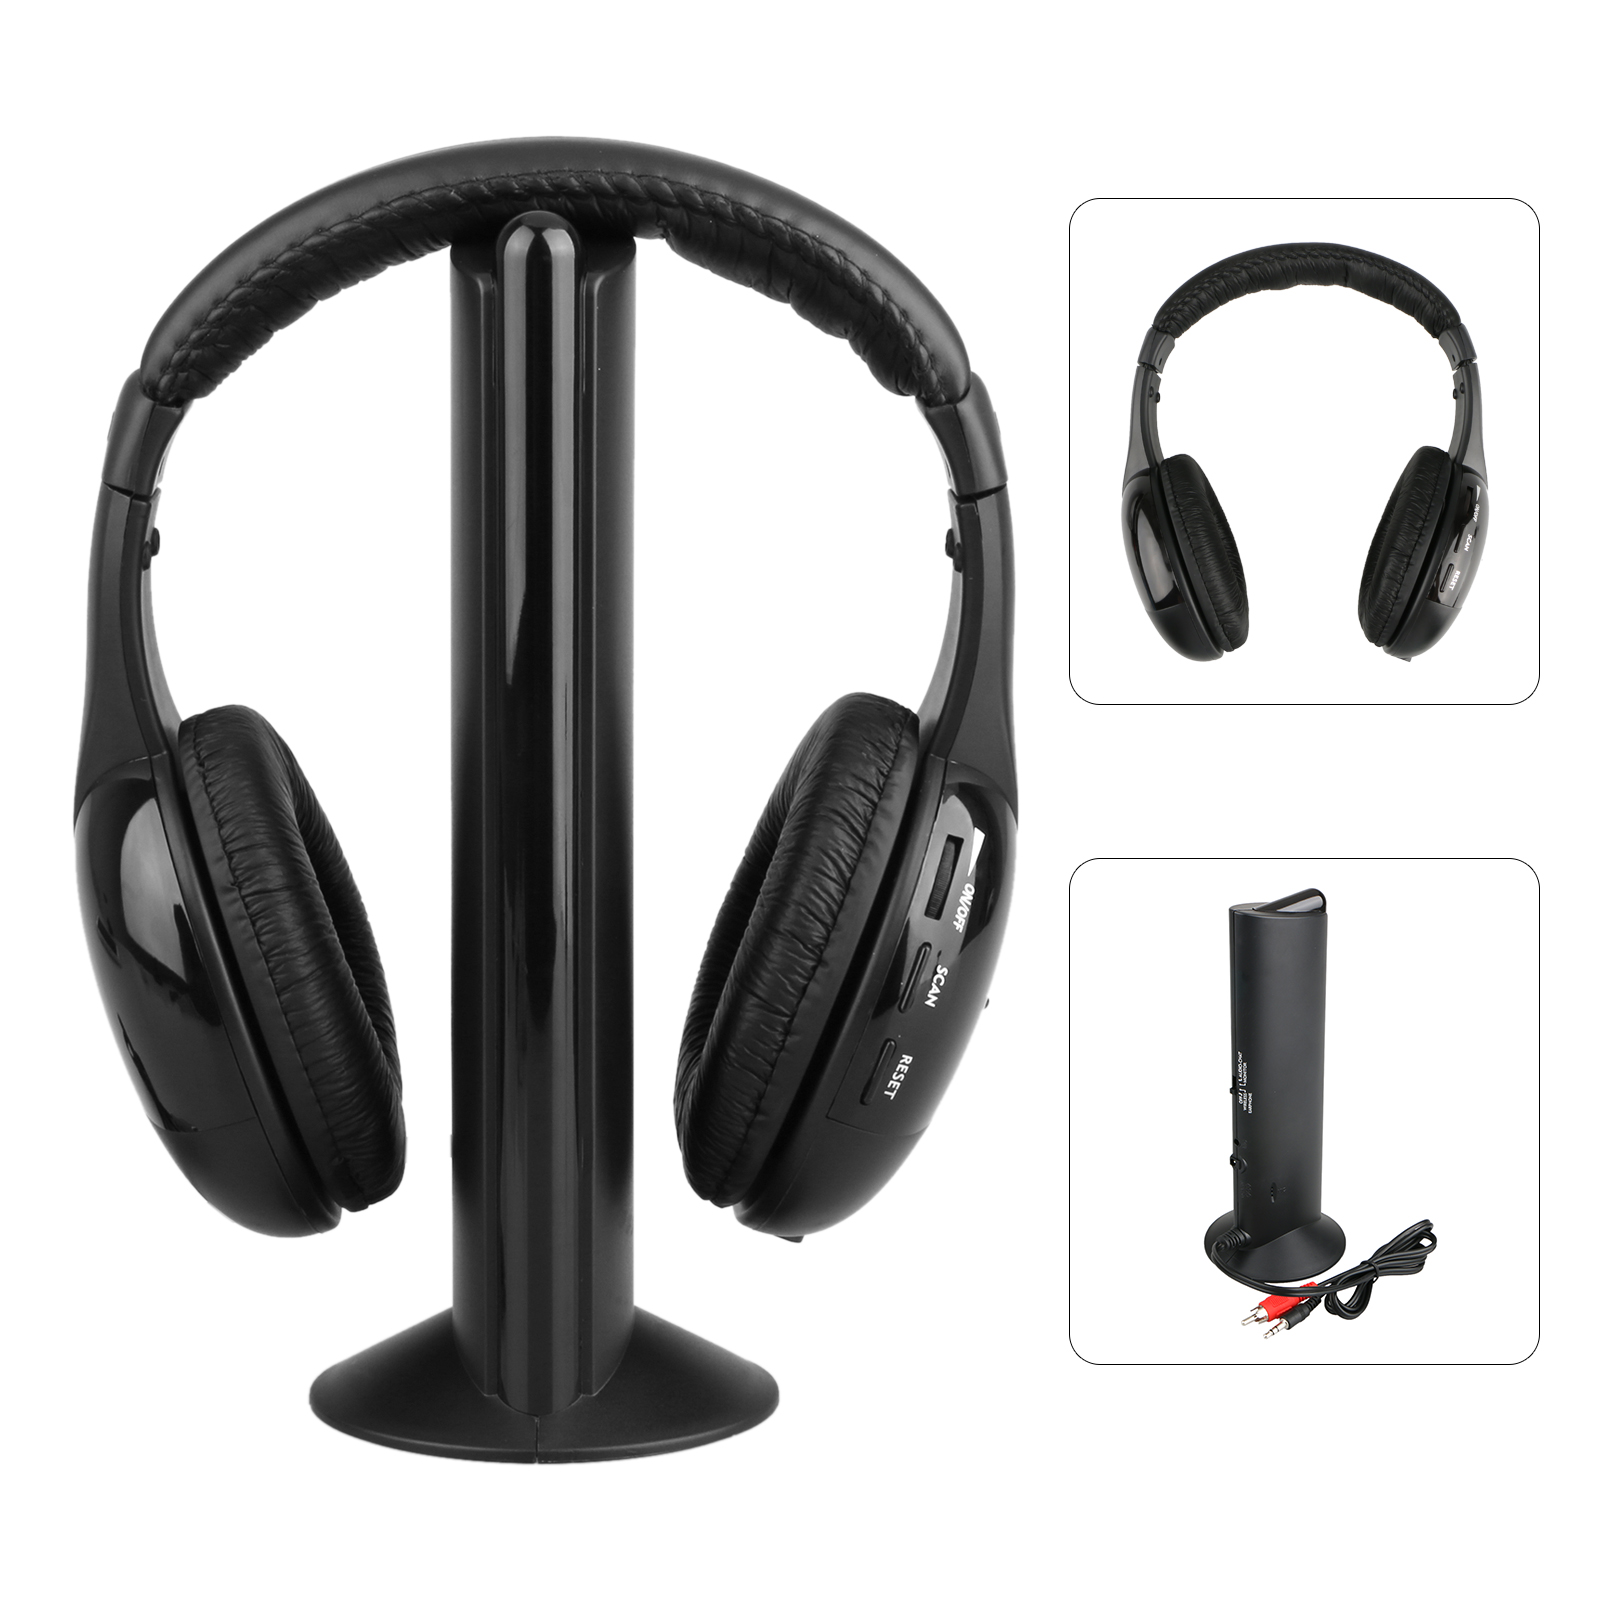 5 in 1 HIFI Wireless Headset Headphones Cordless RF Mic for PC TV DVD CD MP3 MP4